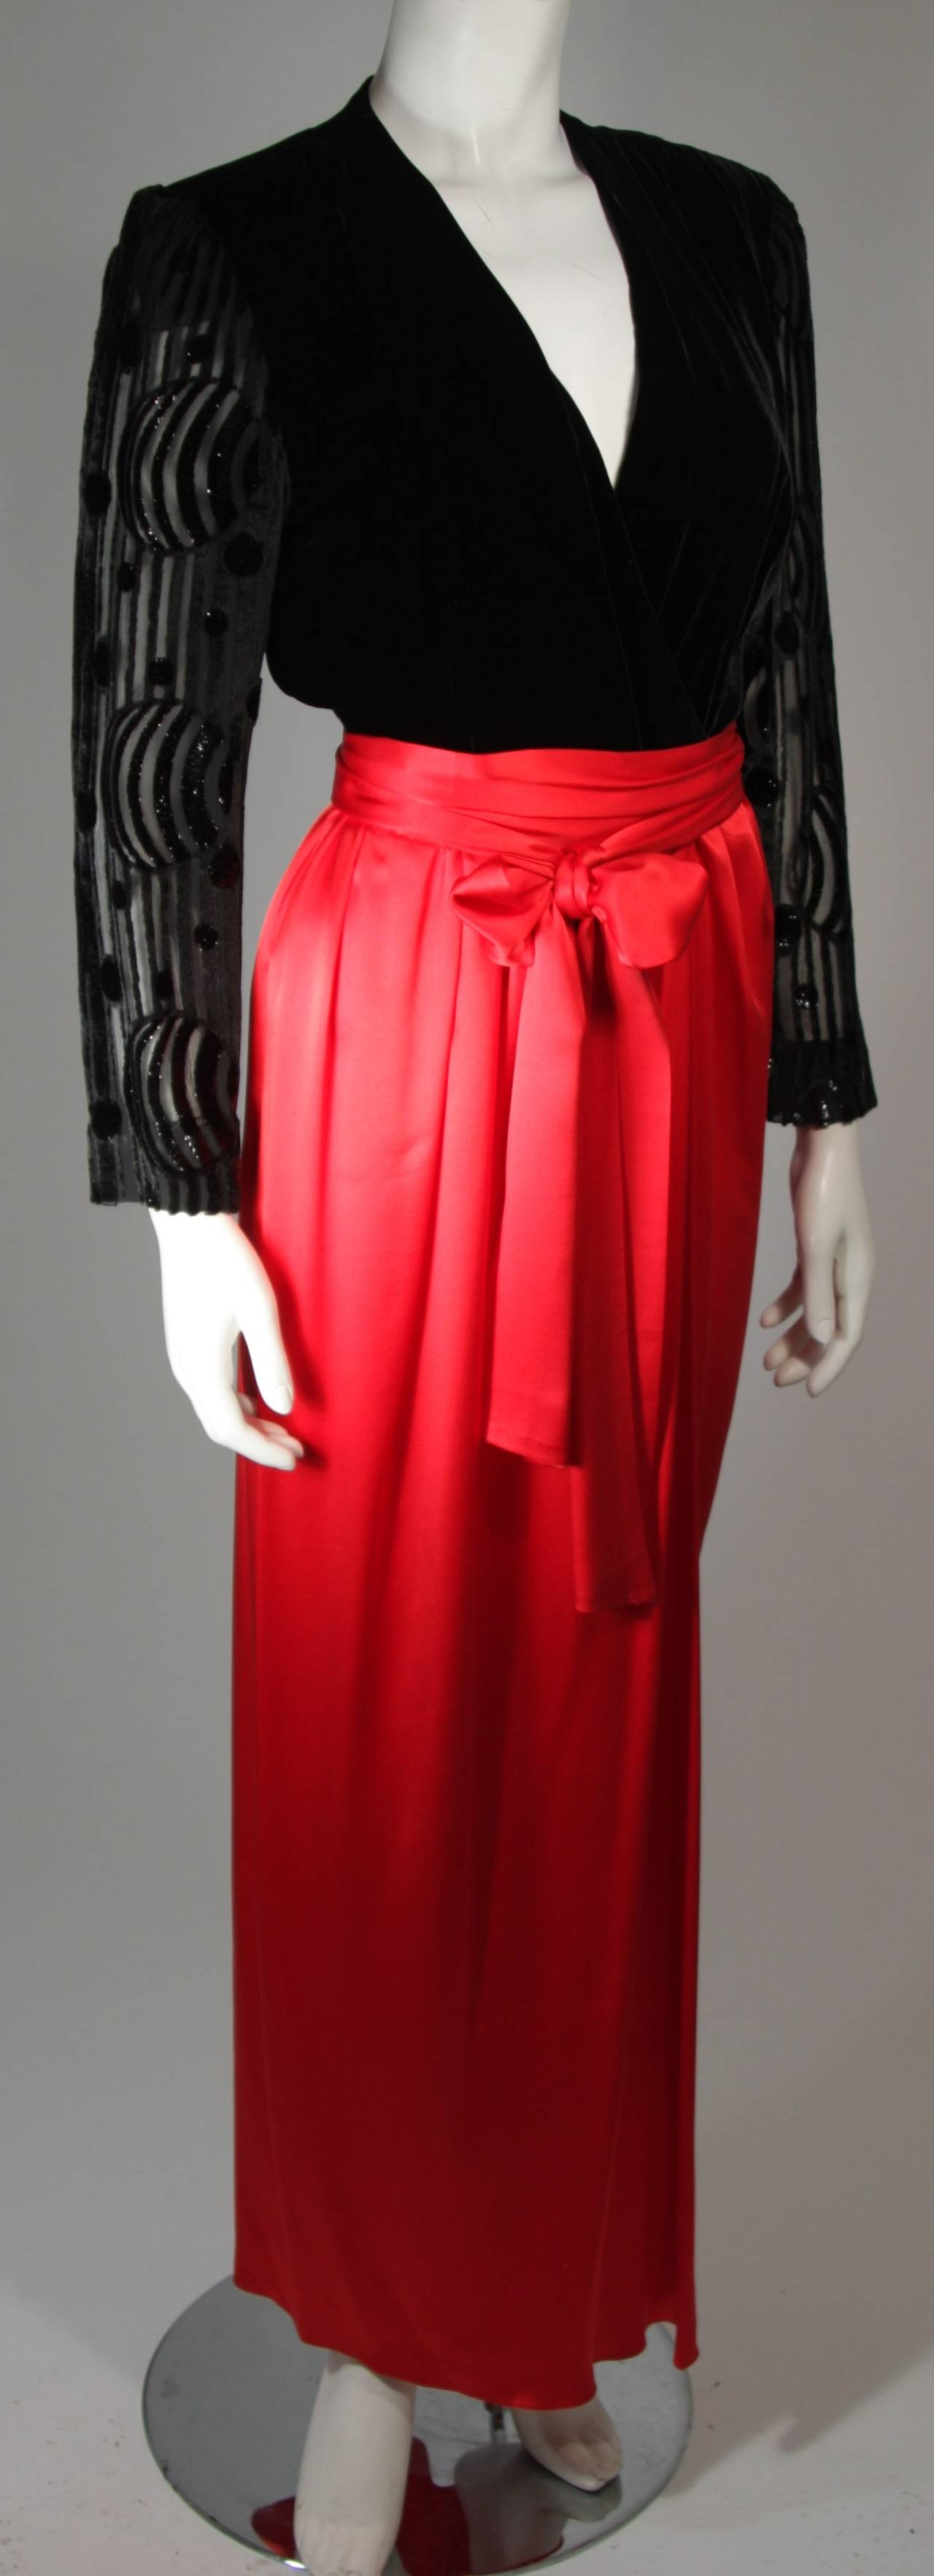 Women's Adele Simpson Burnout Black Velvet and Red Silk Gown Size Small For Sale